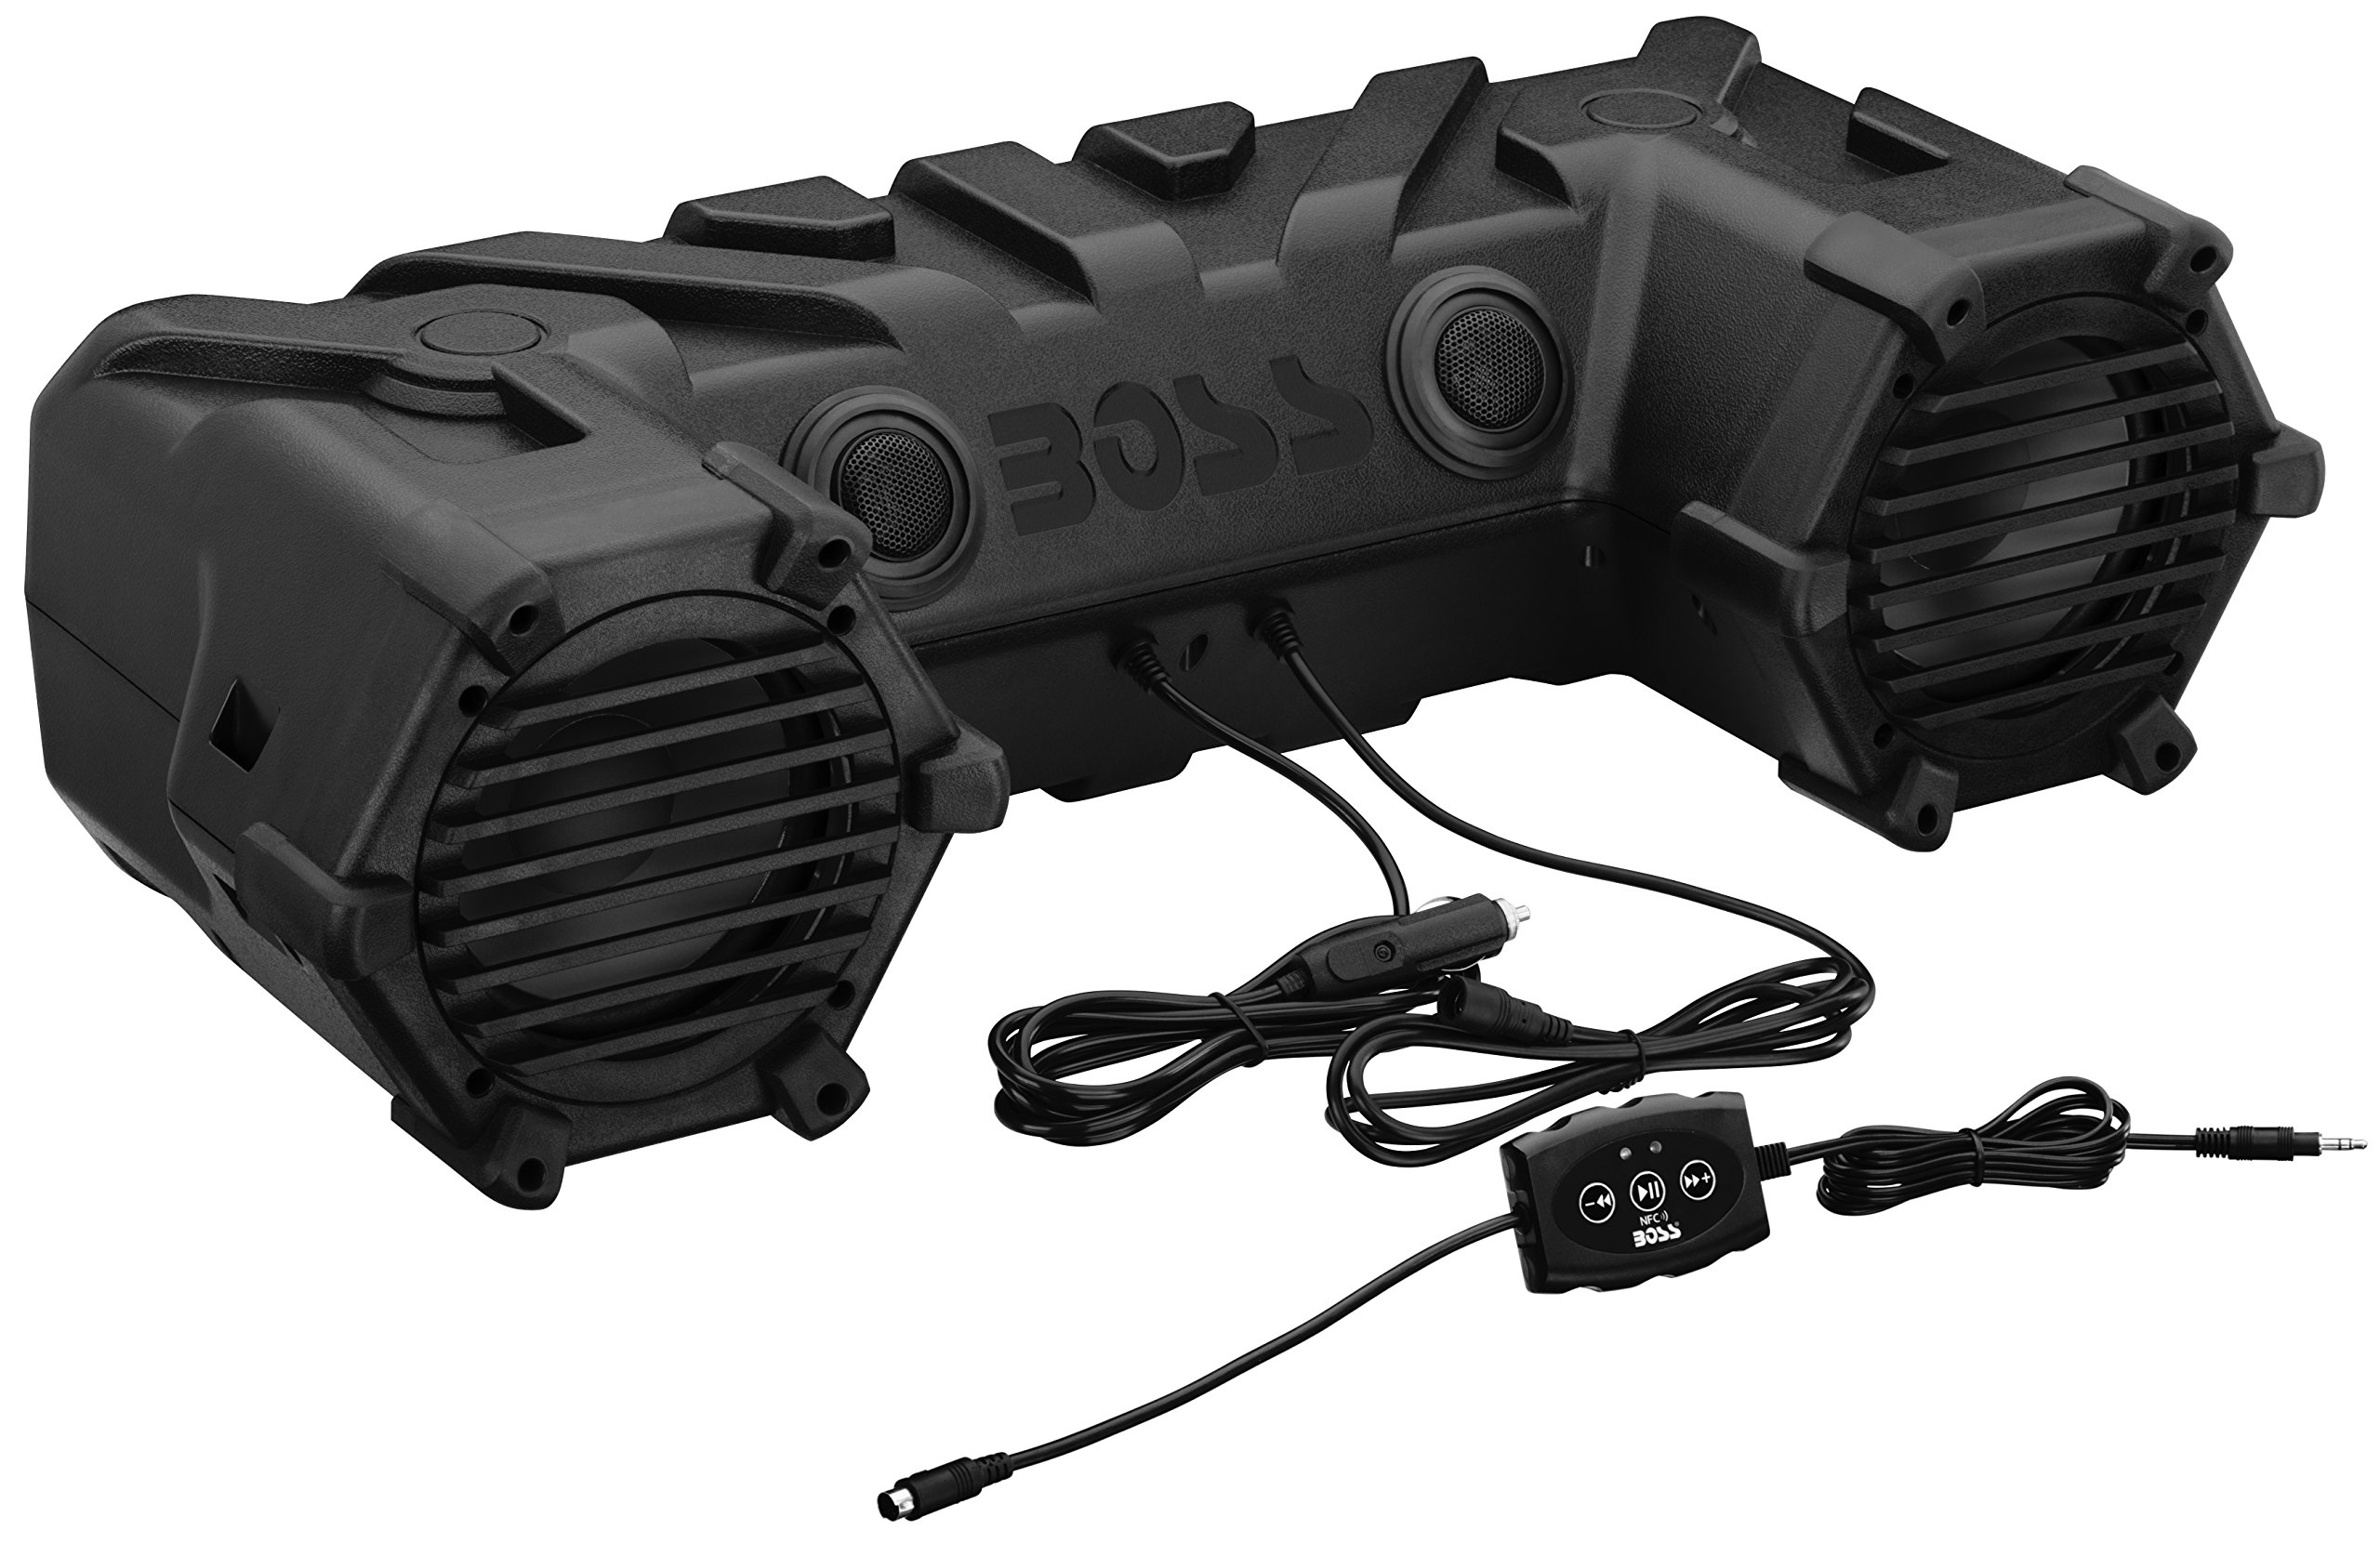 BOSS AUDIO ATV28B Powersports Plug and Play Audio System with Weather Proof 6.5 Inch Component Speakers, Built in 450 Watt Amp.